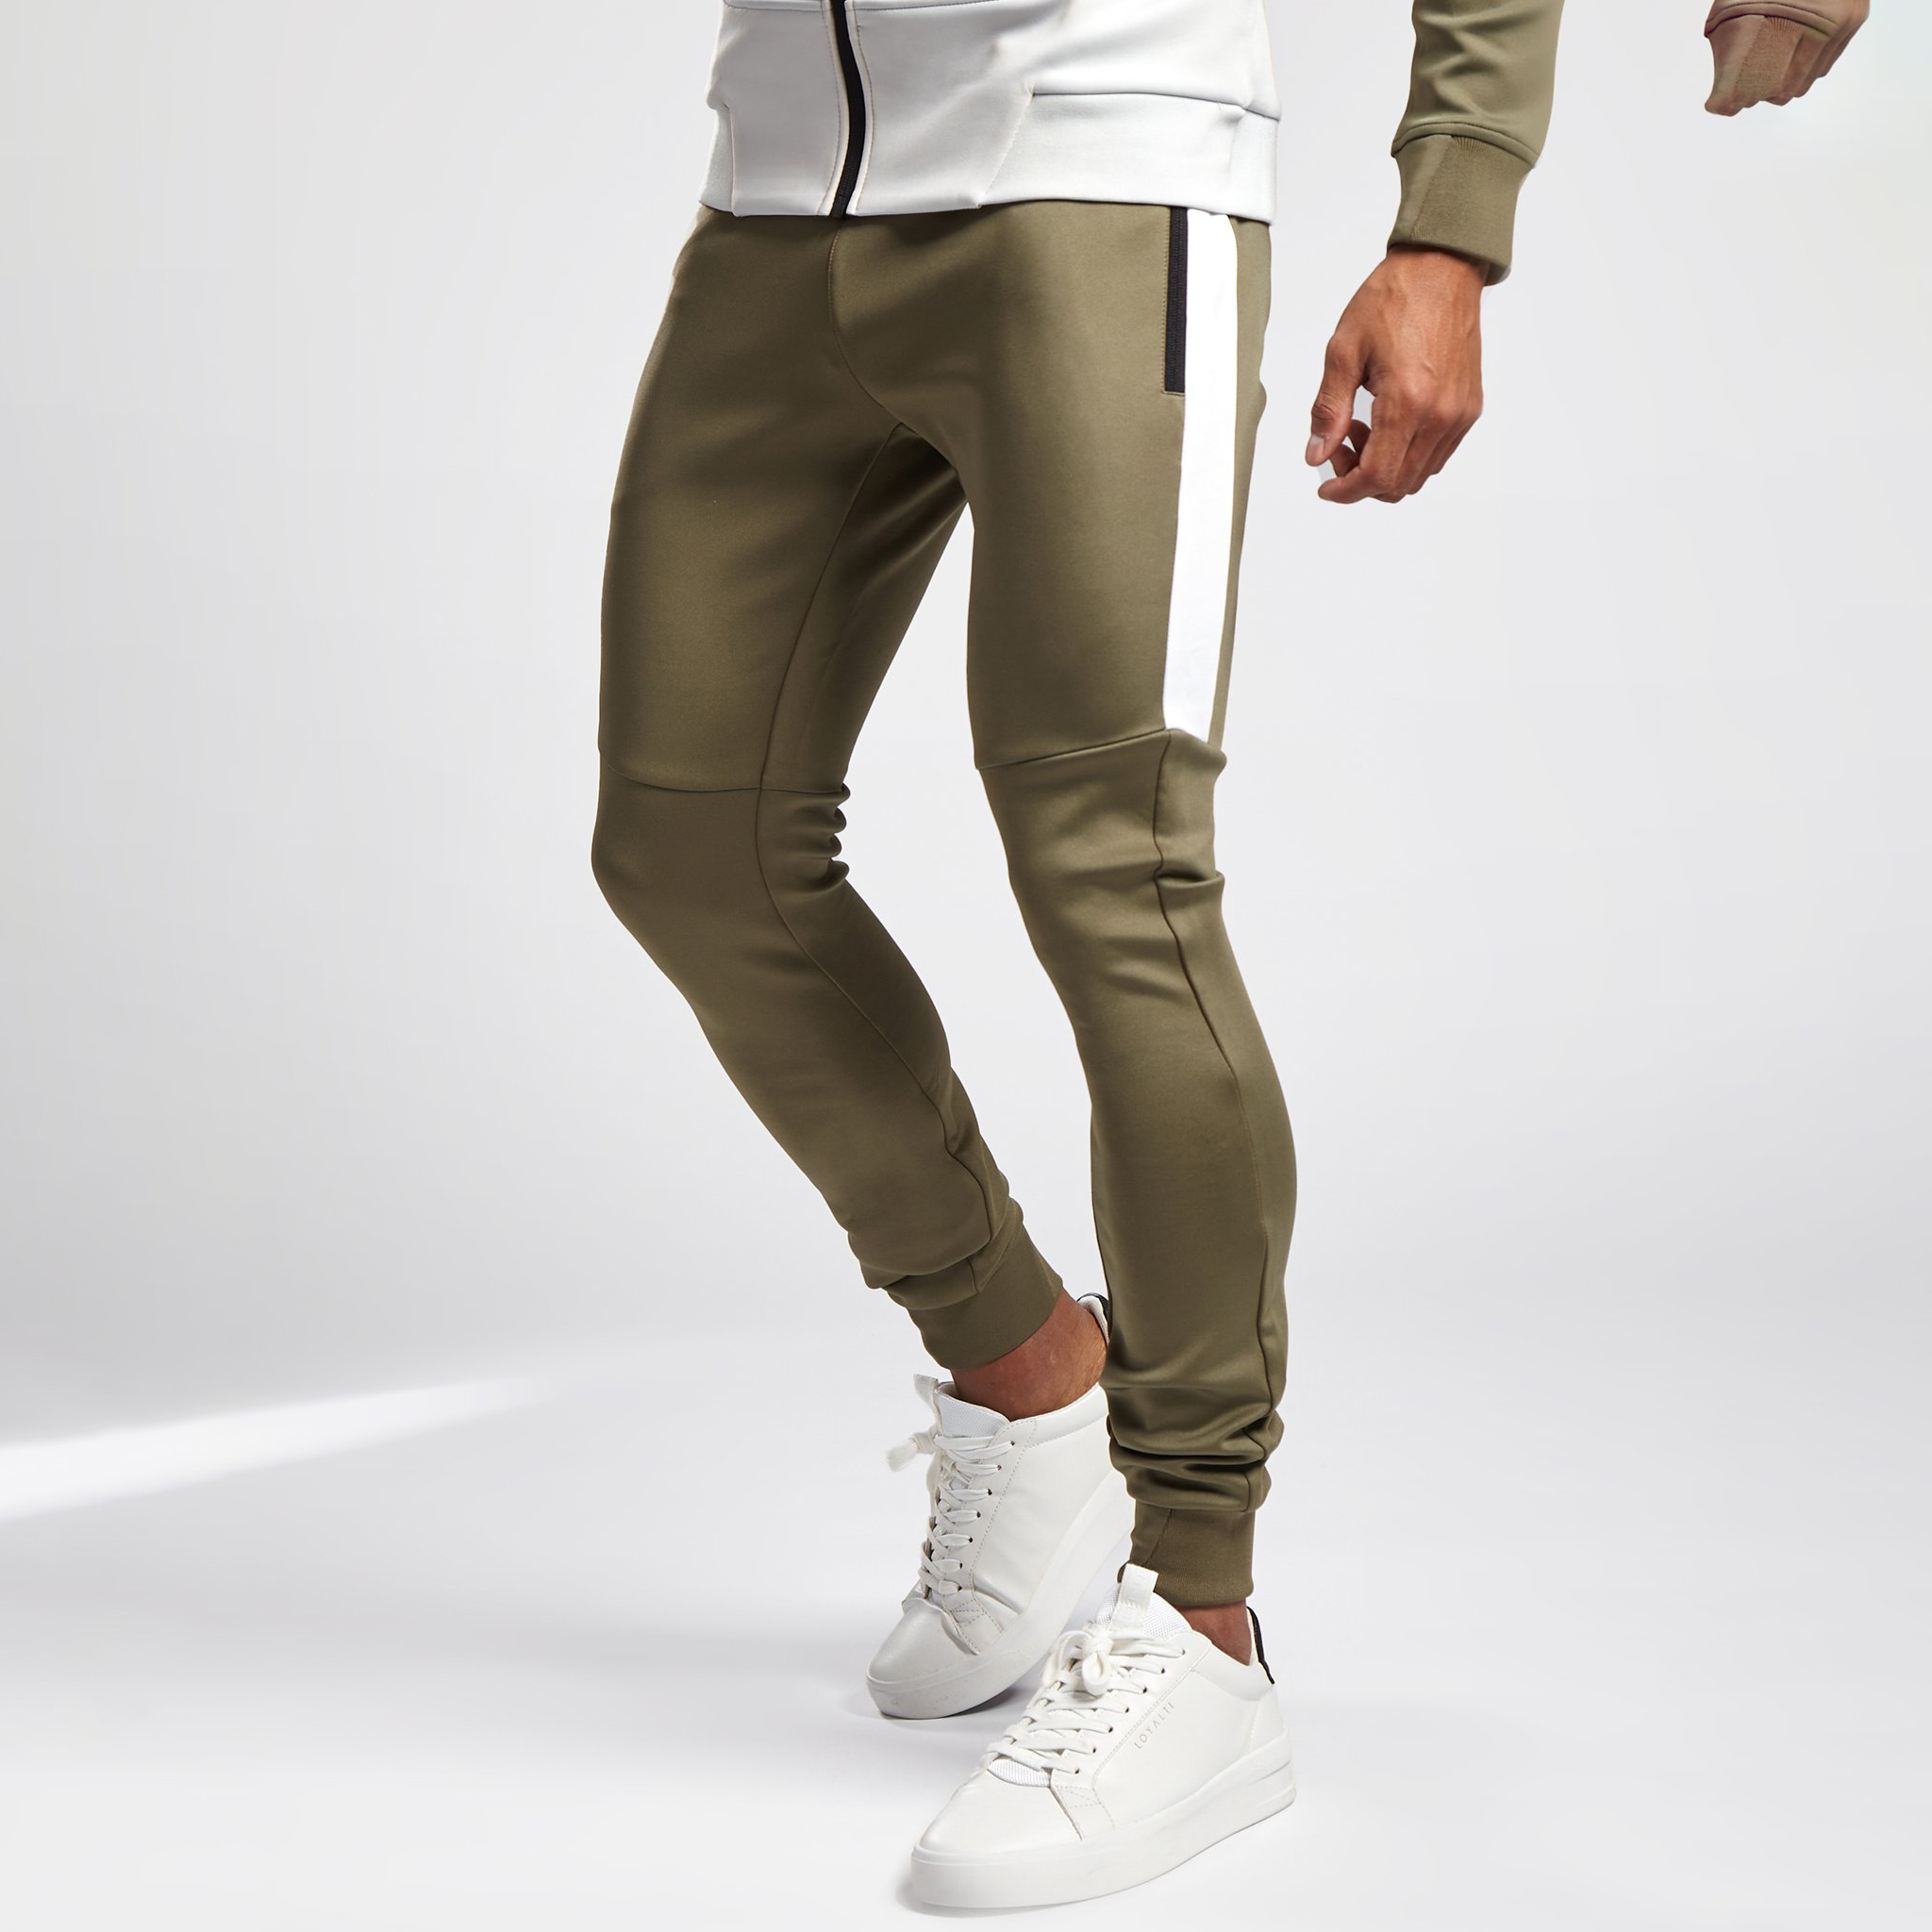 product-Ruiteng-High Quality Manufacture Made Tracksuits Mens Athletic Training Gym Tracksuits-img